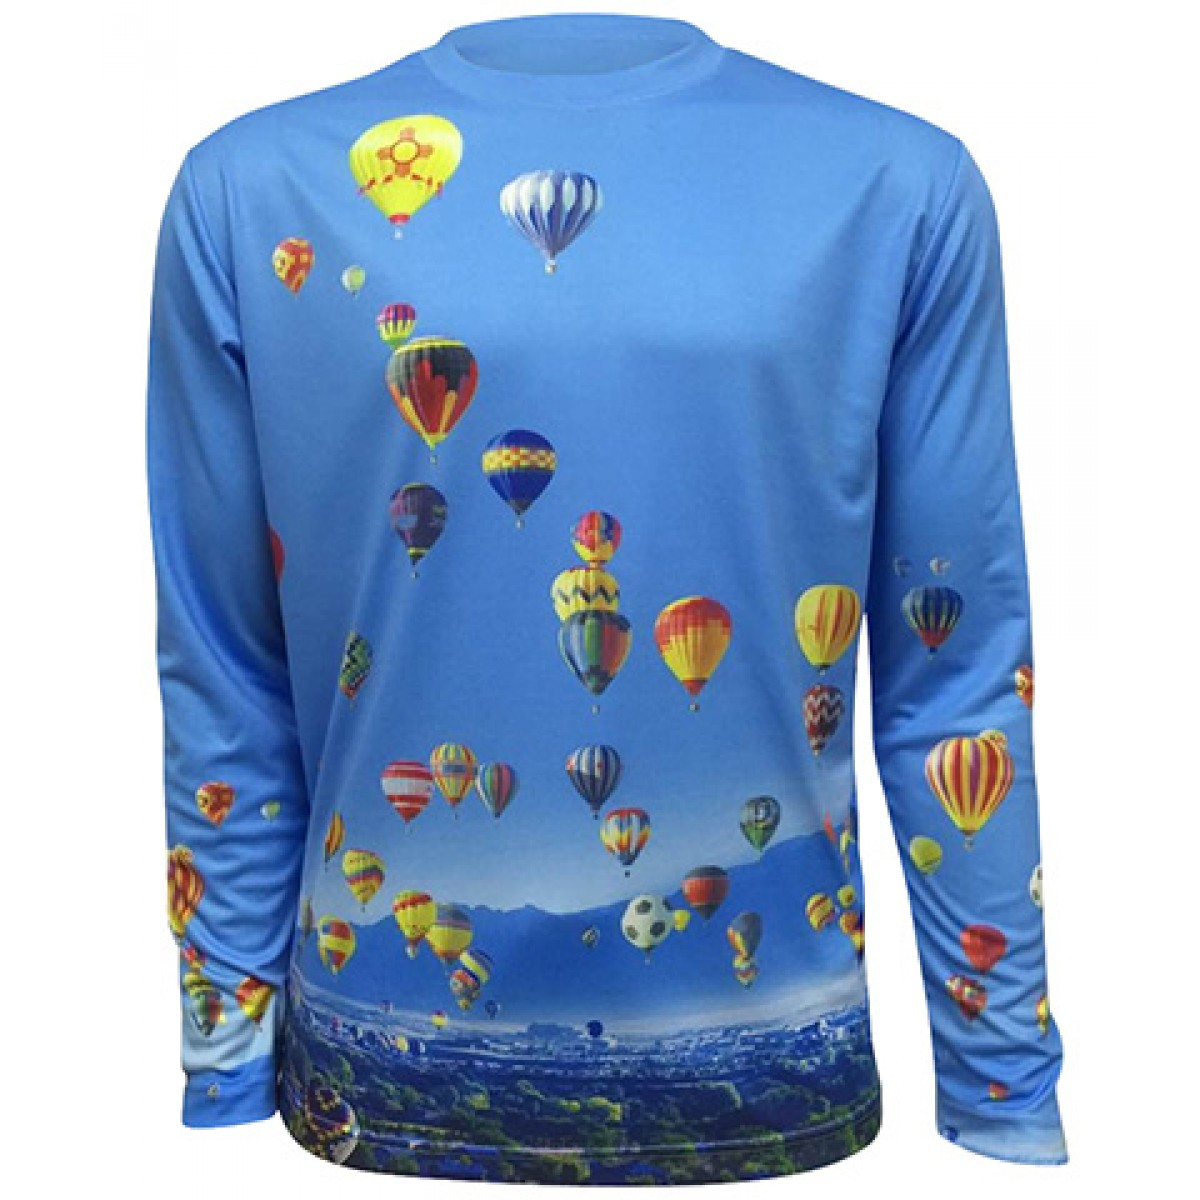 AIBF Sublimated Long Sleeve-Blue-YL